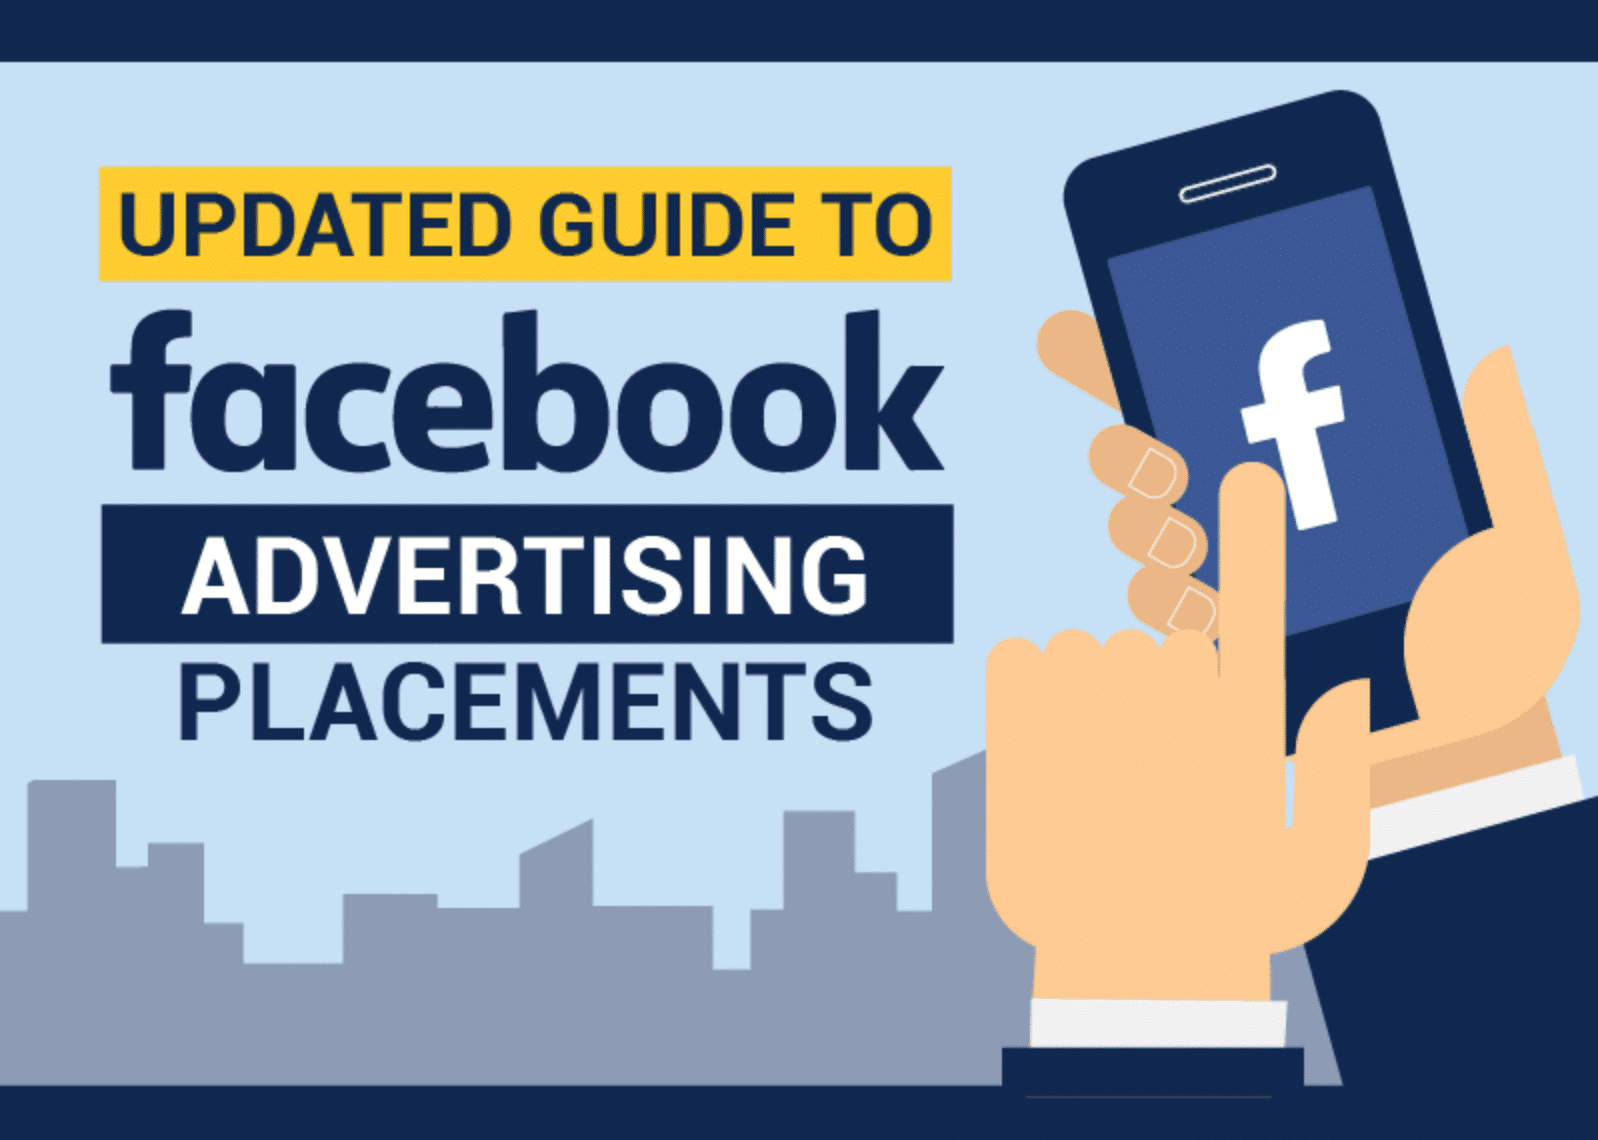 Facebook Ad Infographic: What Do You Need To Know For Your Ad Campaign?